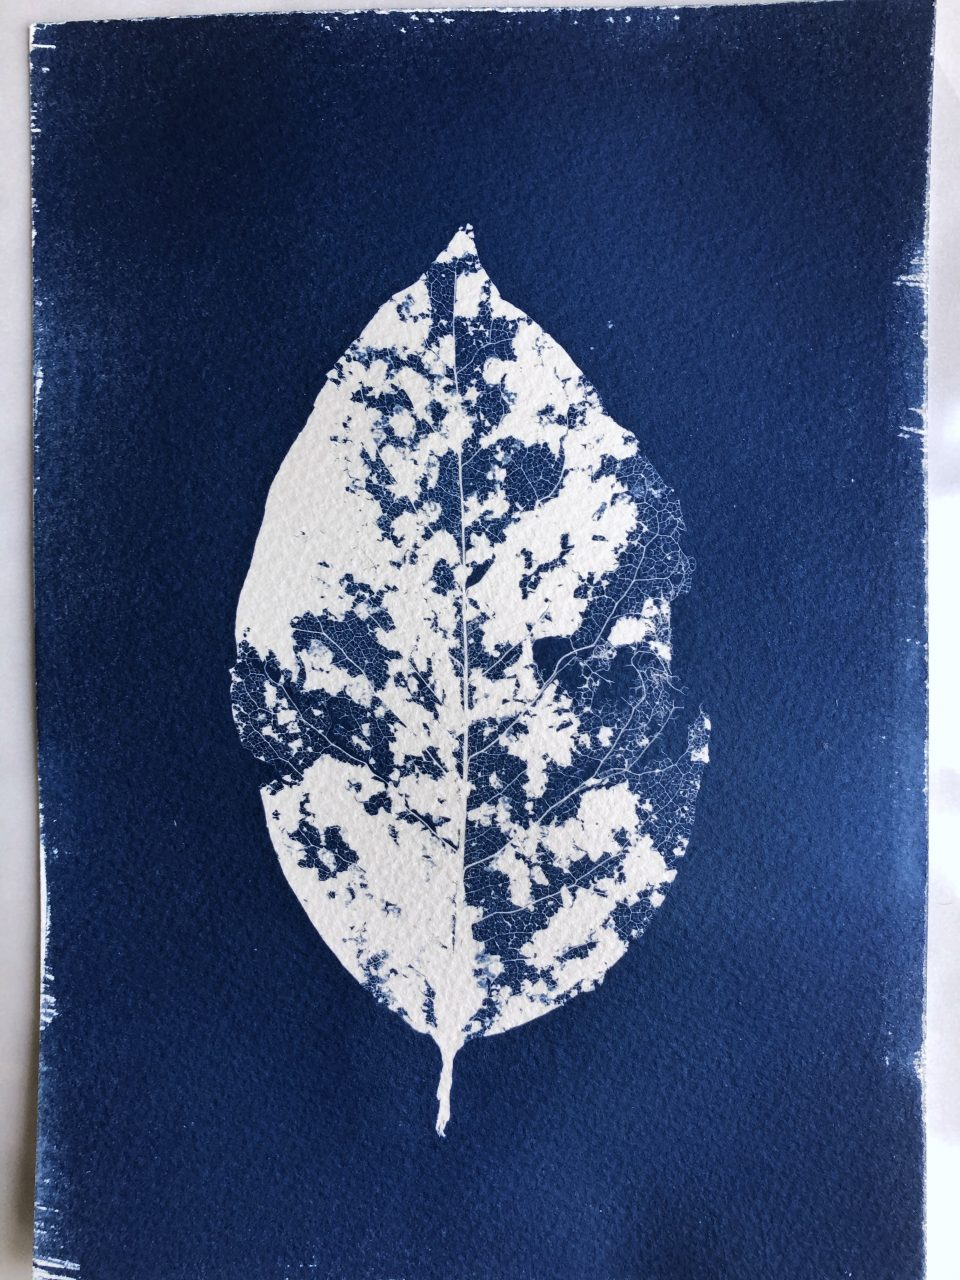 The finished cyanotype leaf print, also known as a photogram